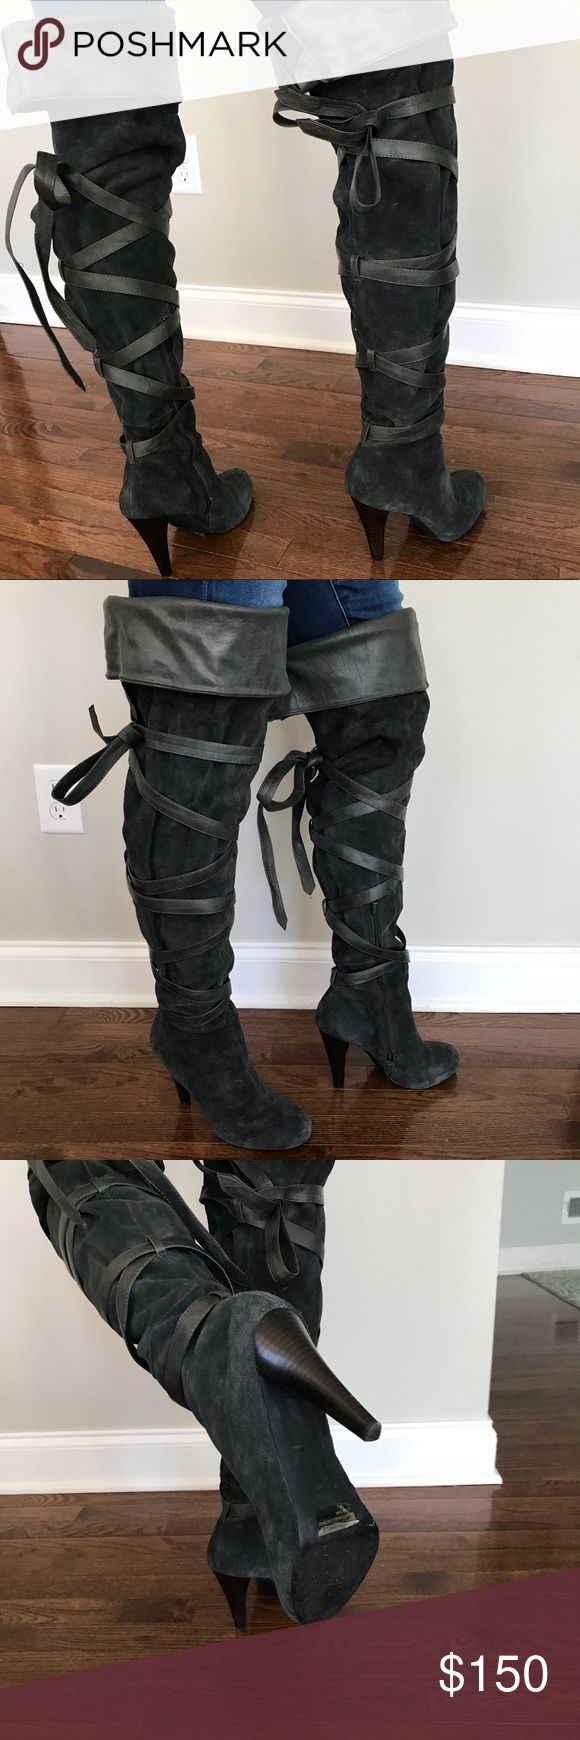 Colin Stuart Thigh High Boots / Grey Suede 10 Colin Stuart Thigh High Boots / Grey Suede 10 / worn once! Comes with box / 4.5 inch Heel Colin Stuart Shoes Over the Knee Boots